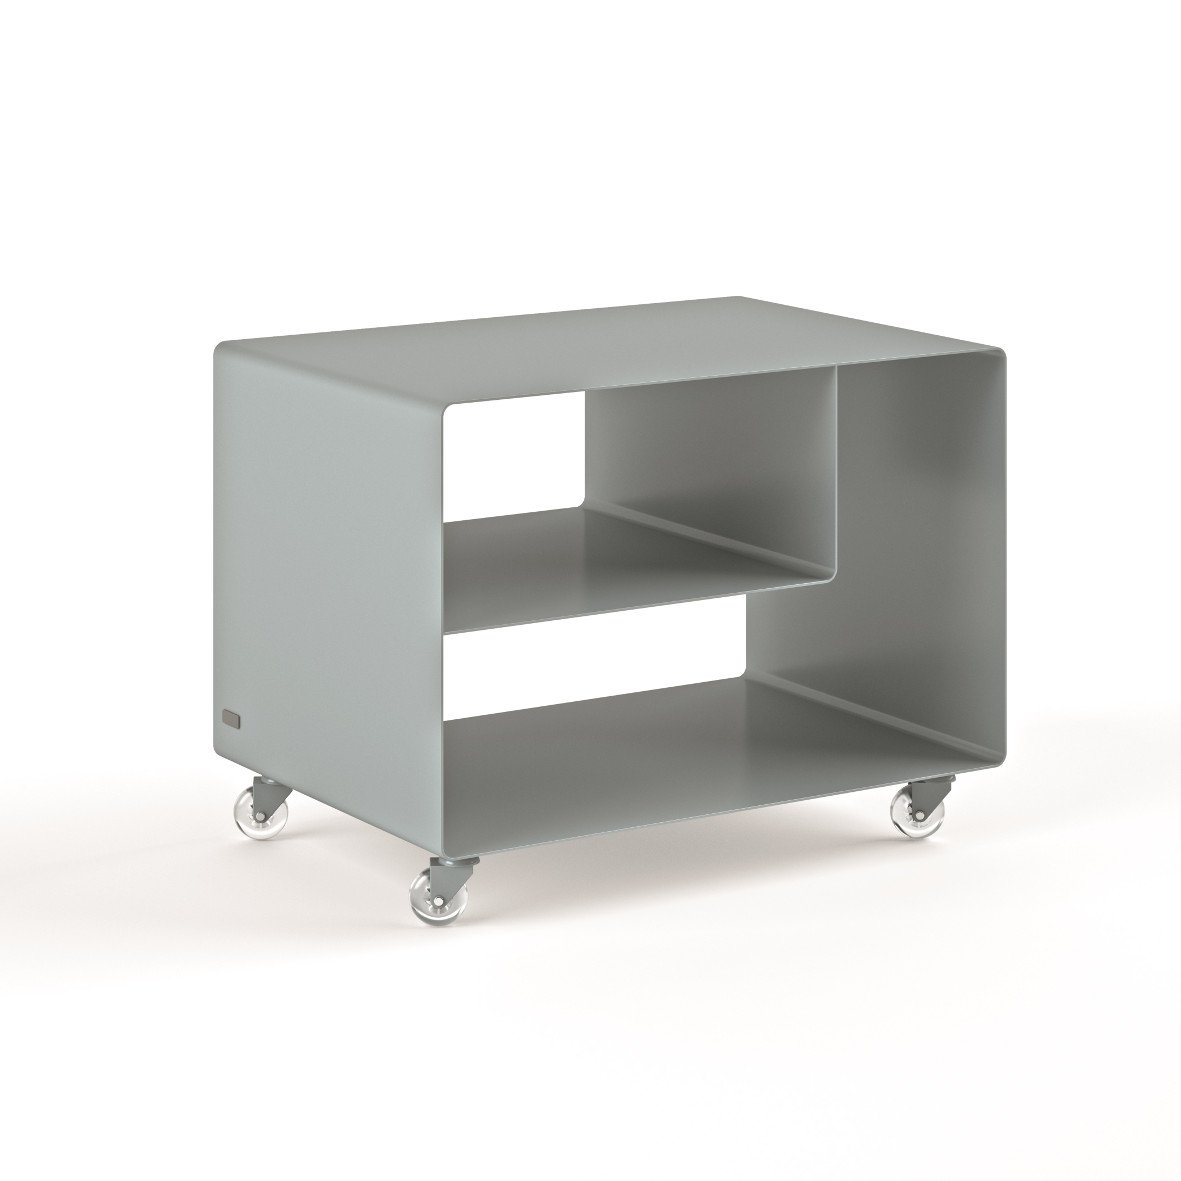 Mobile Line Trolley storage from Muller